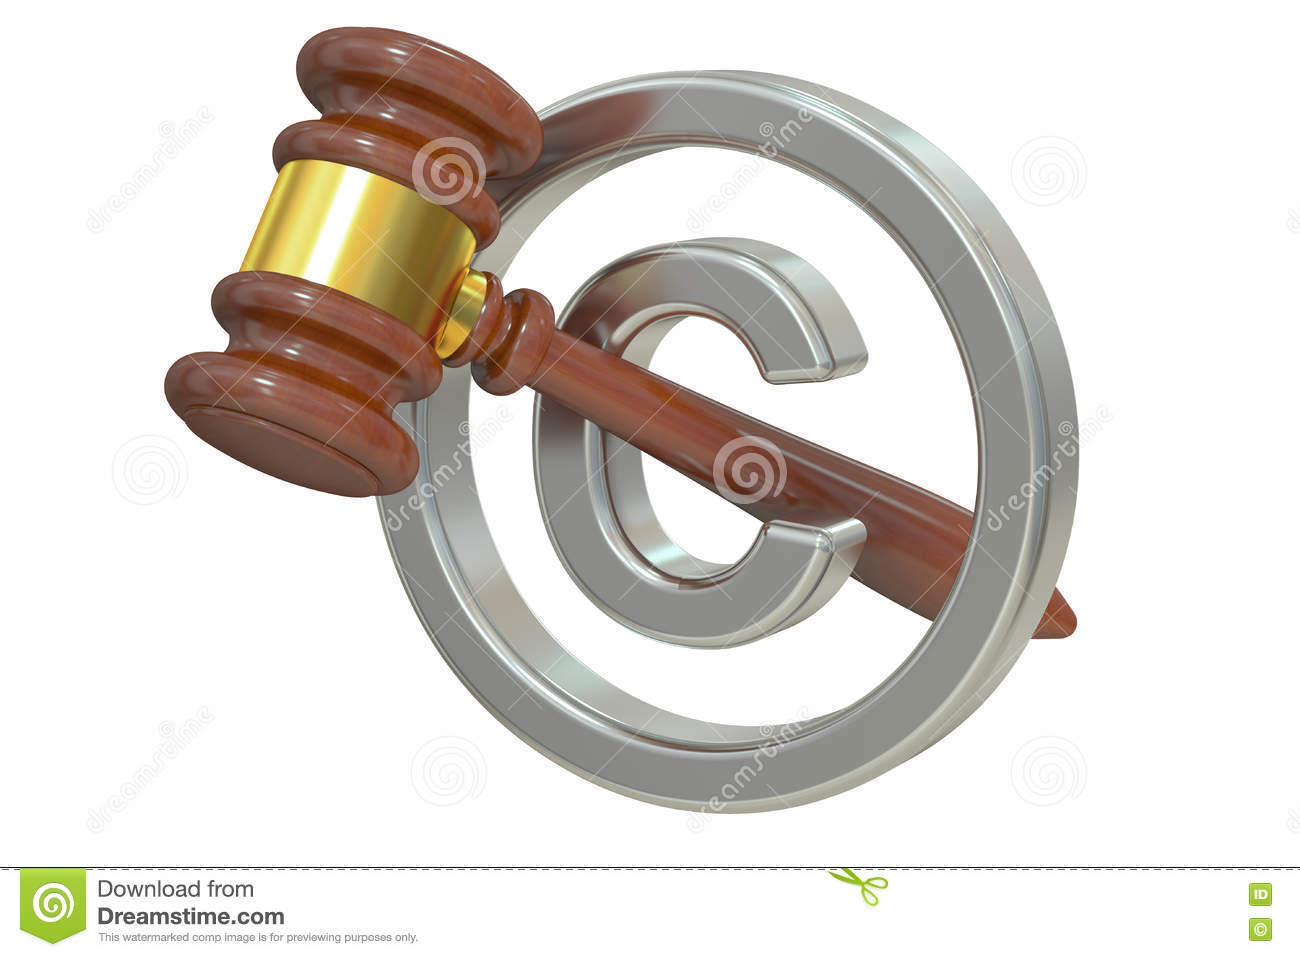 Copyright laws and intellectual property legal protection for Www dreamhome com